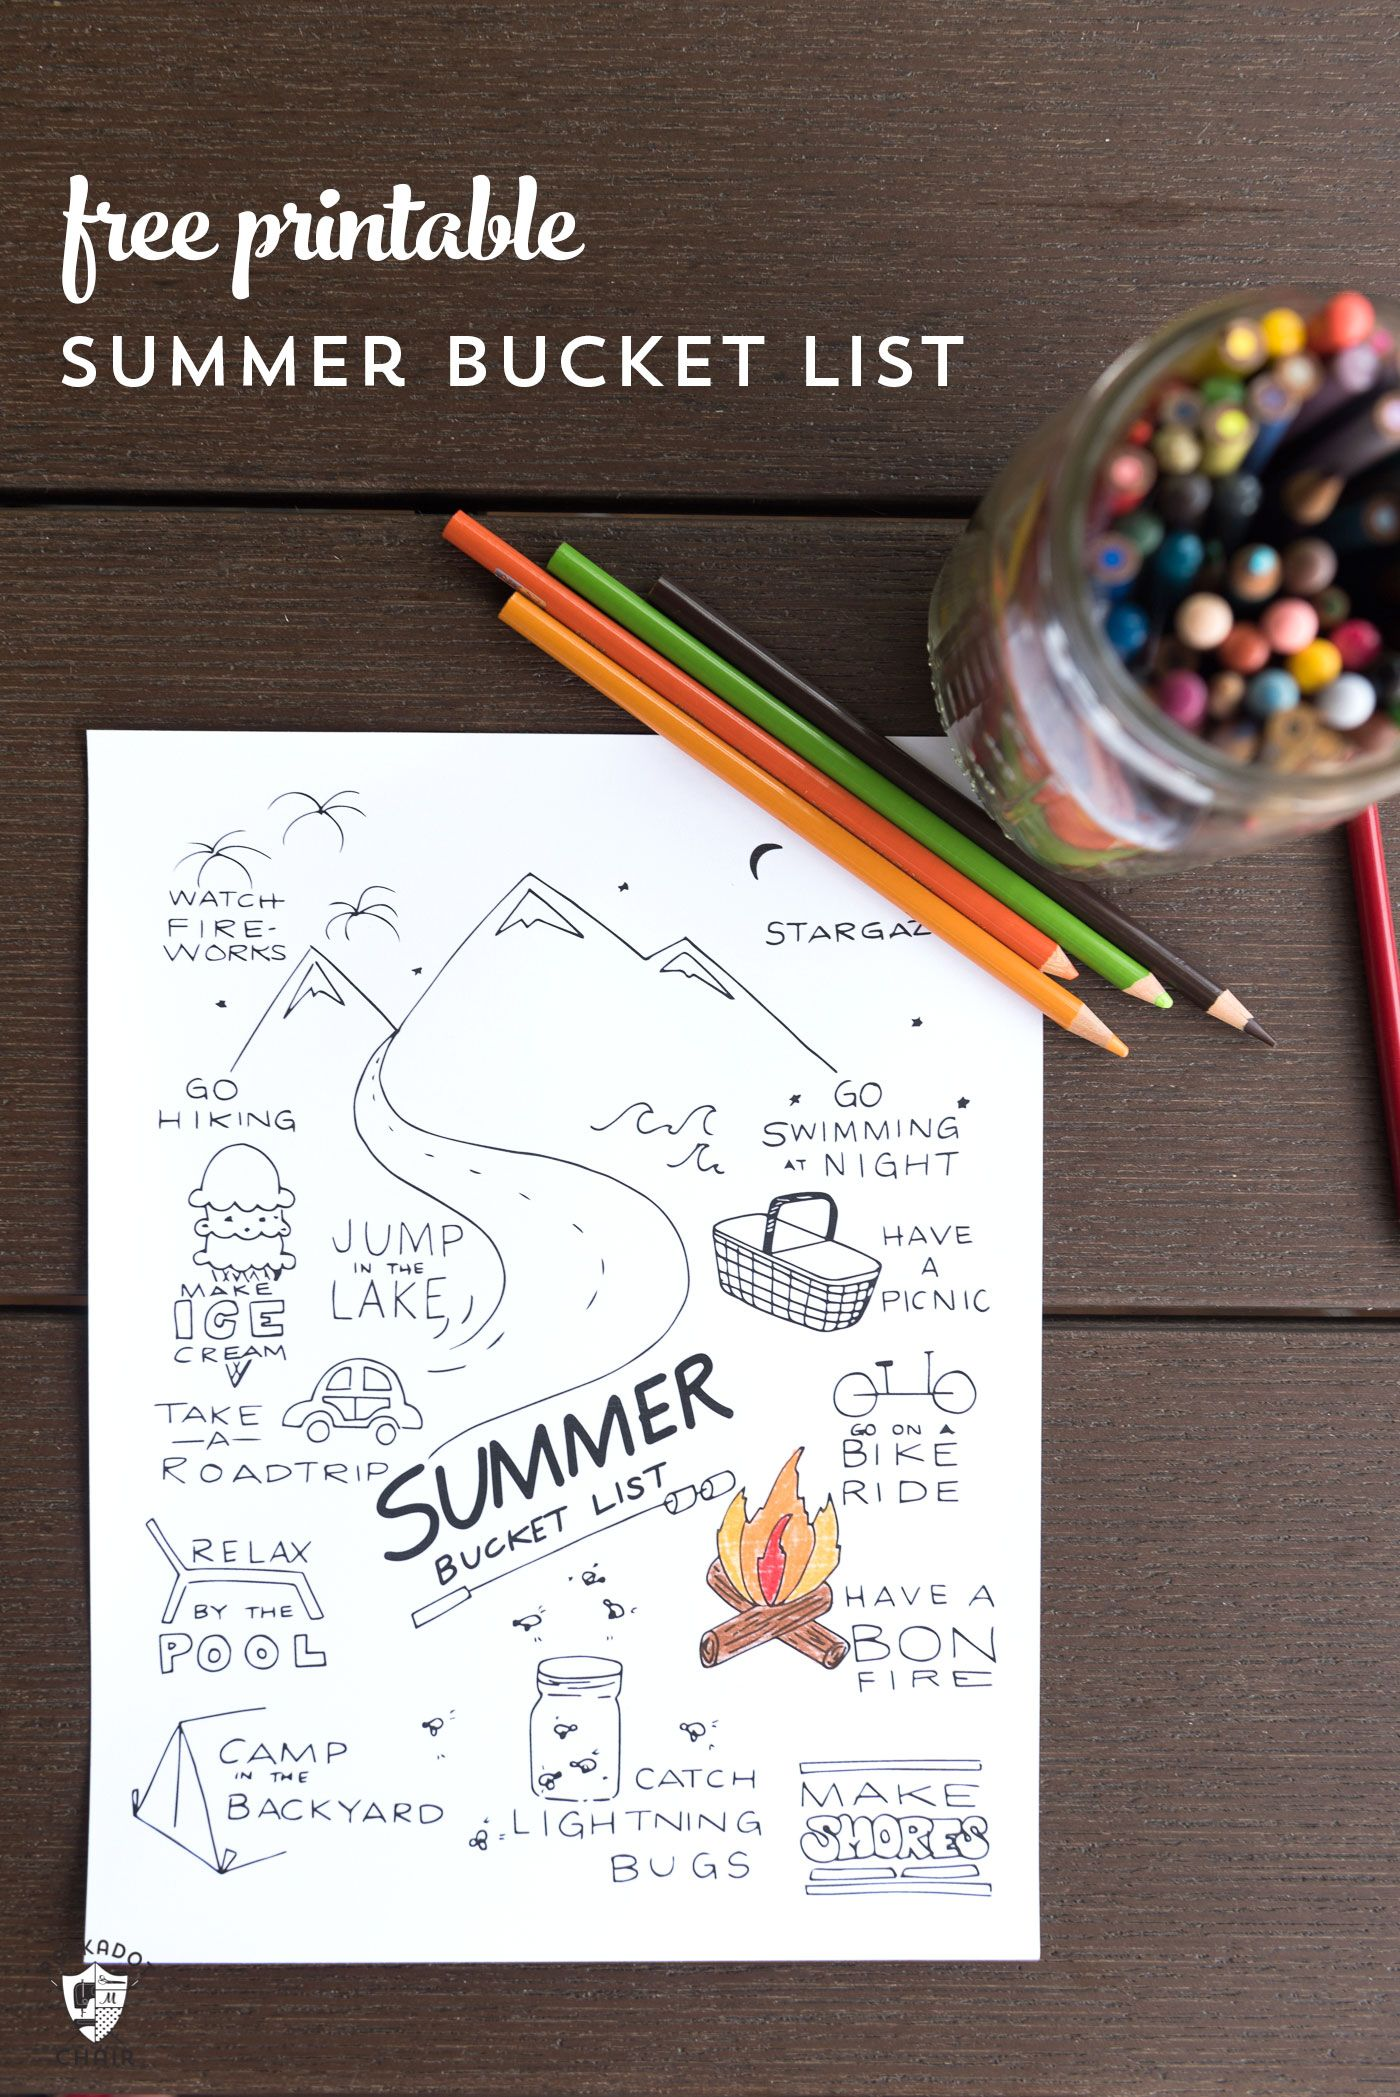 Free Printable Summer Bucket List Coloring Page Summer Bucket List Printable Summer Bucket Lists Coloring Pages